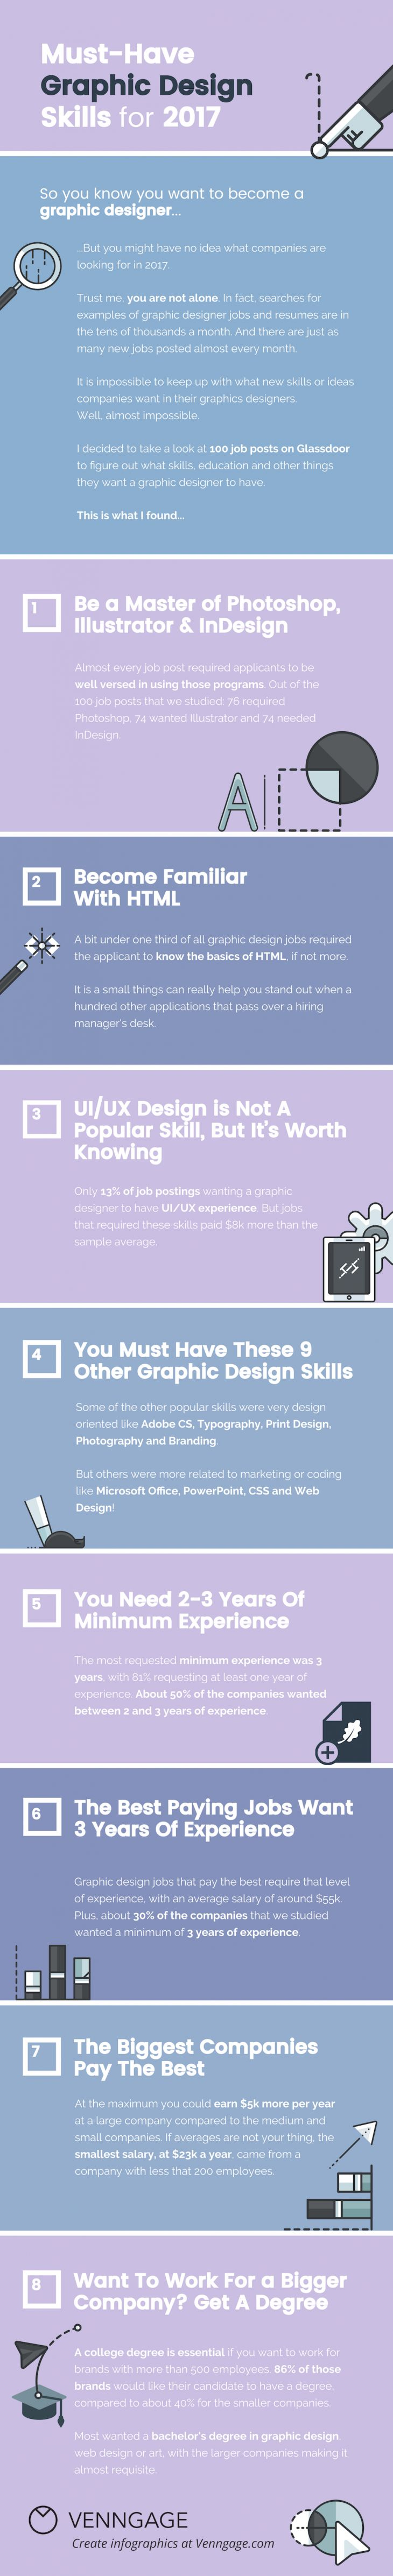 Imagine this for a second: there is a job that allows you a ton of creative freedom. And almost every company in America–actually, the world–needs one on their team. Yes, the job is a graphic designer.